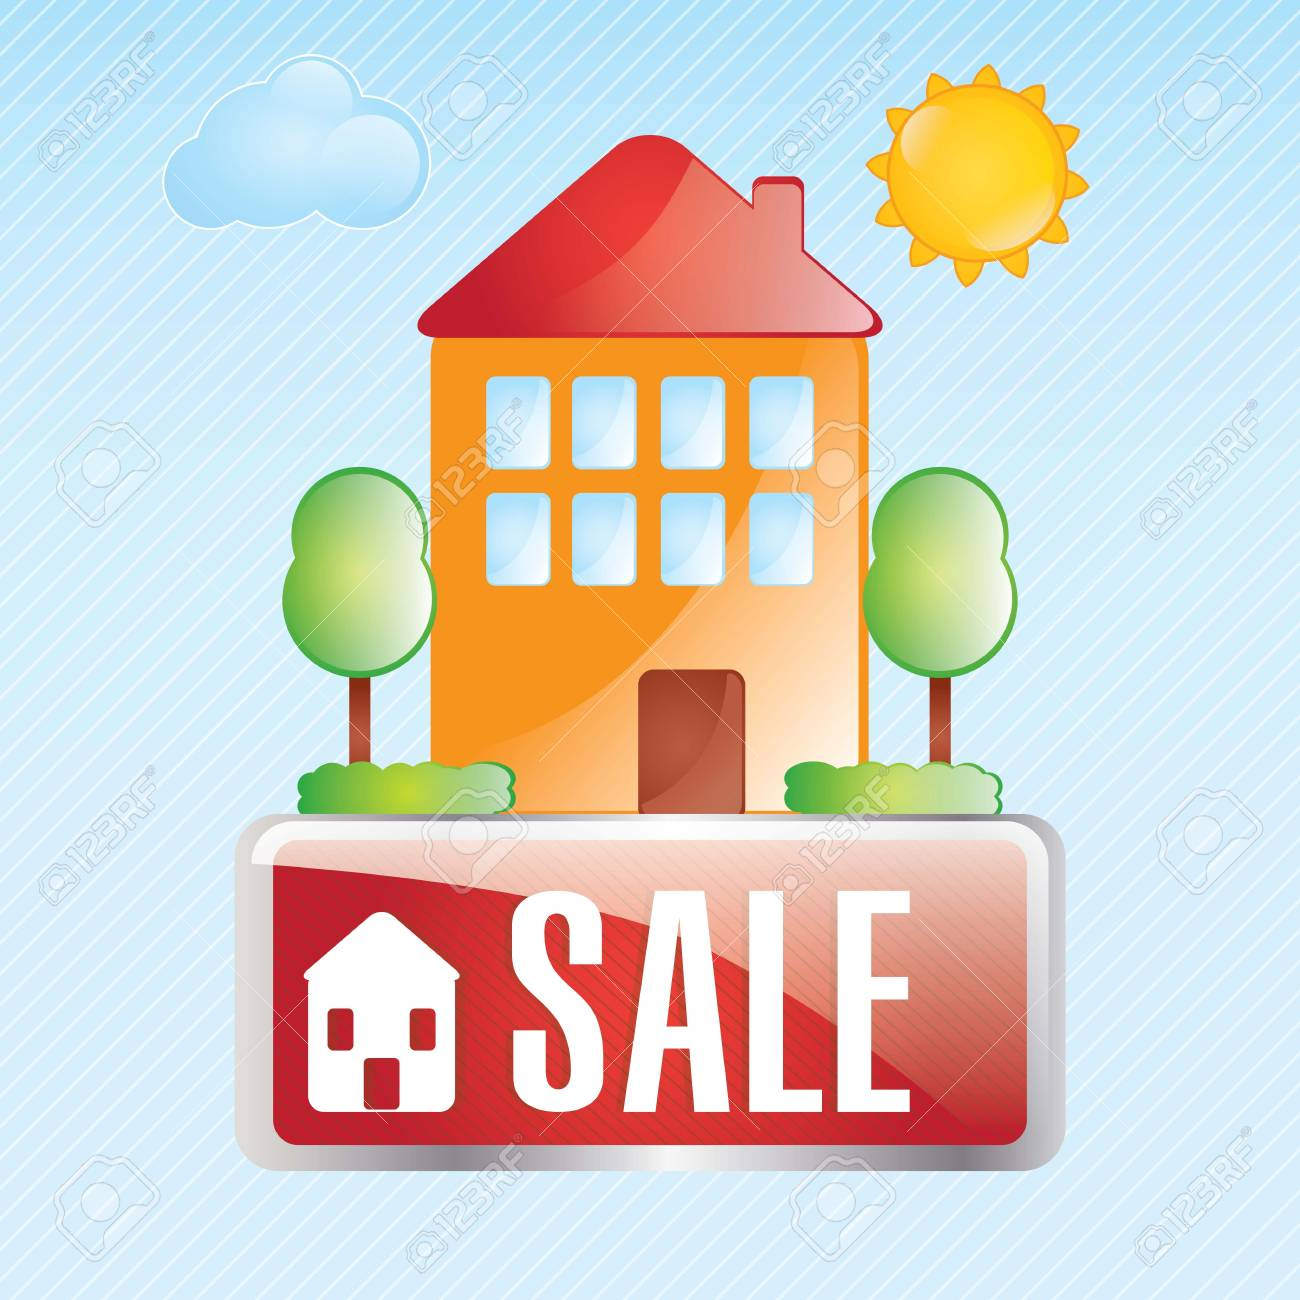 Home for sale  over blue background. vector illustration Stock Vector - 17623232